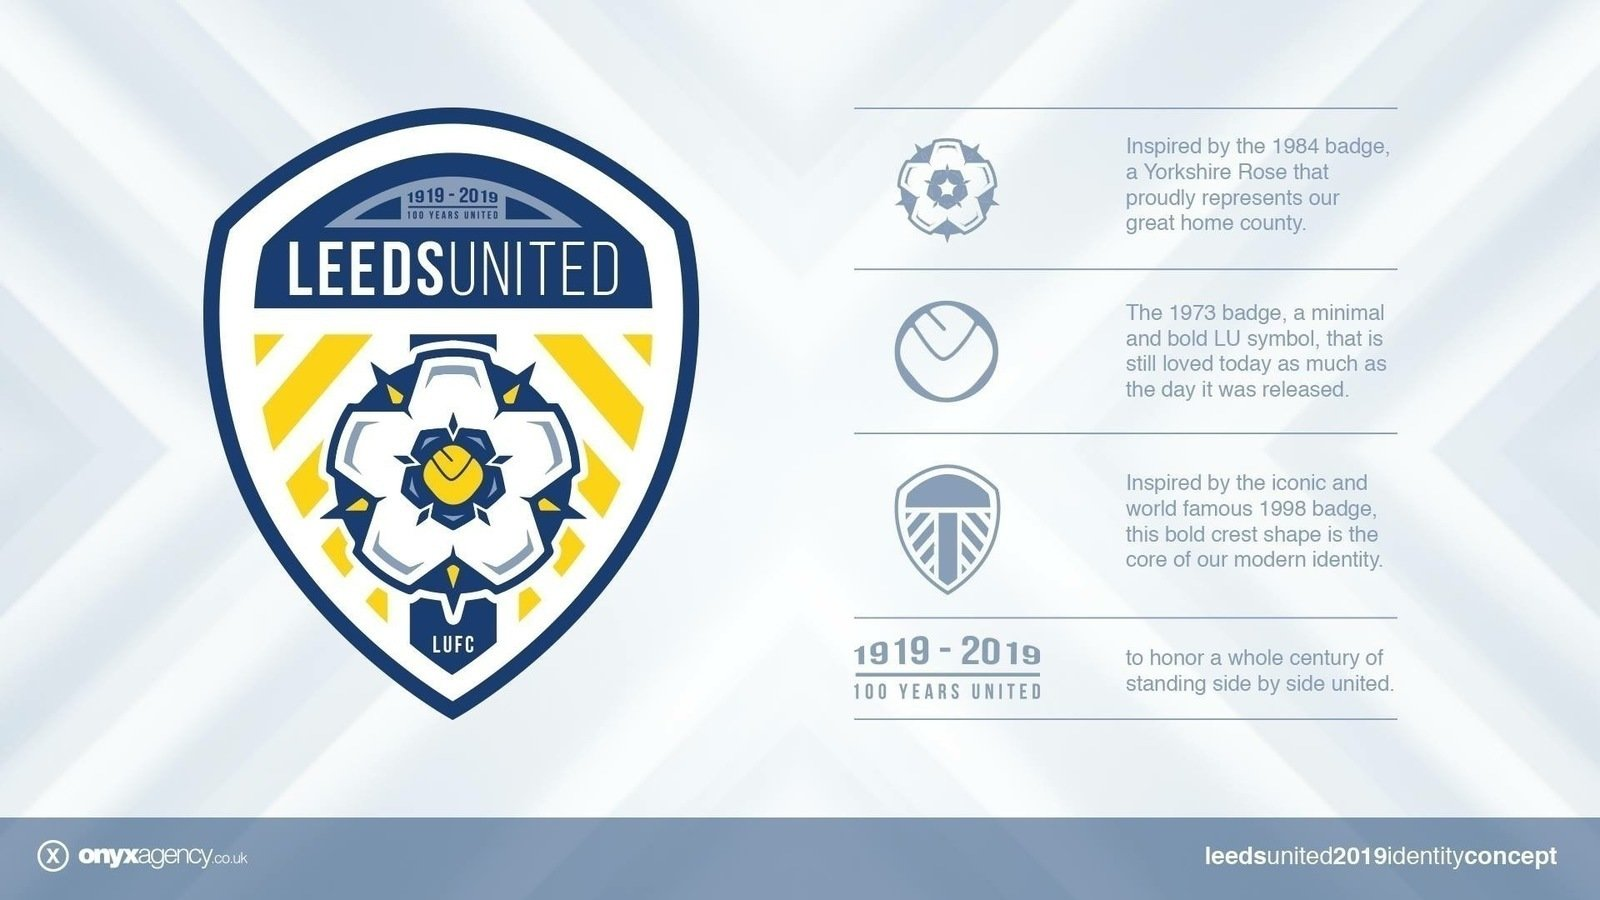 Petition Lufc Make This The New Leeds United Crest Logo By Onyx Agency Change Org